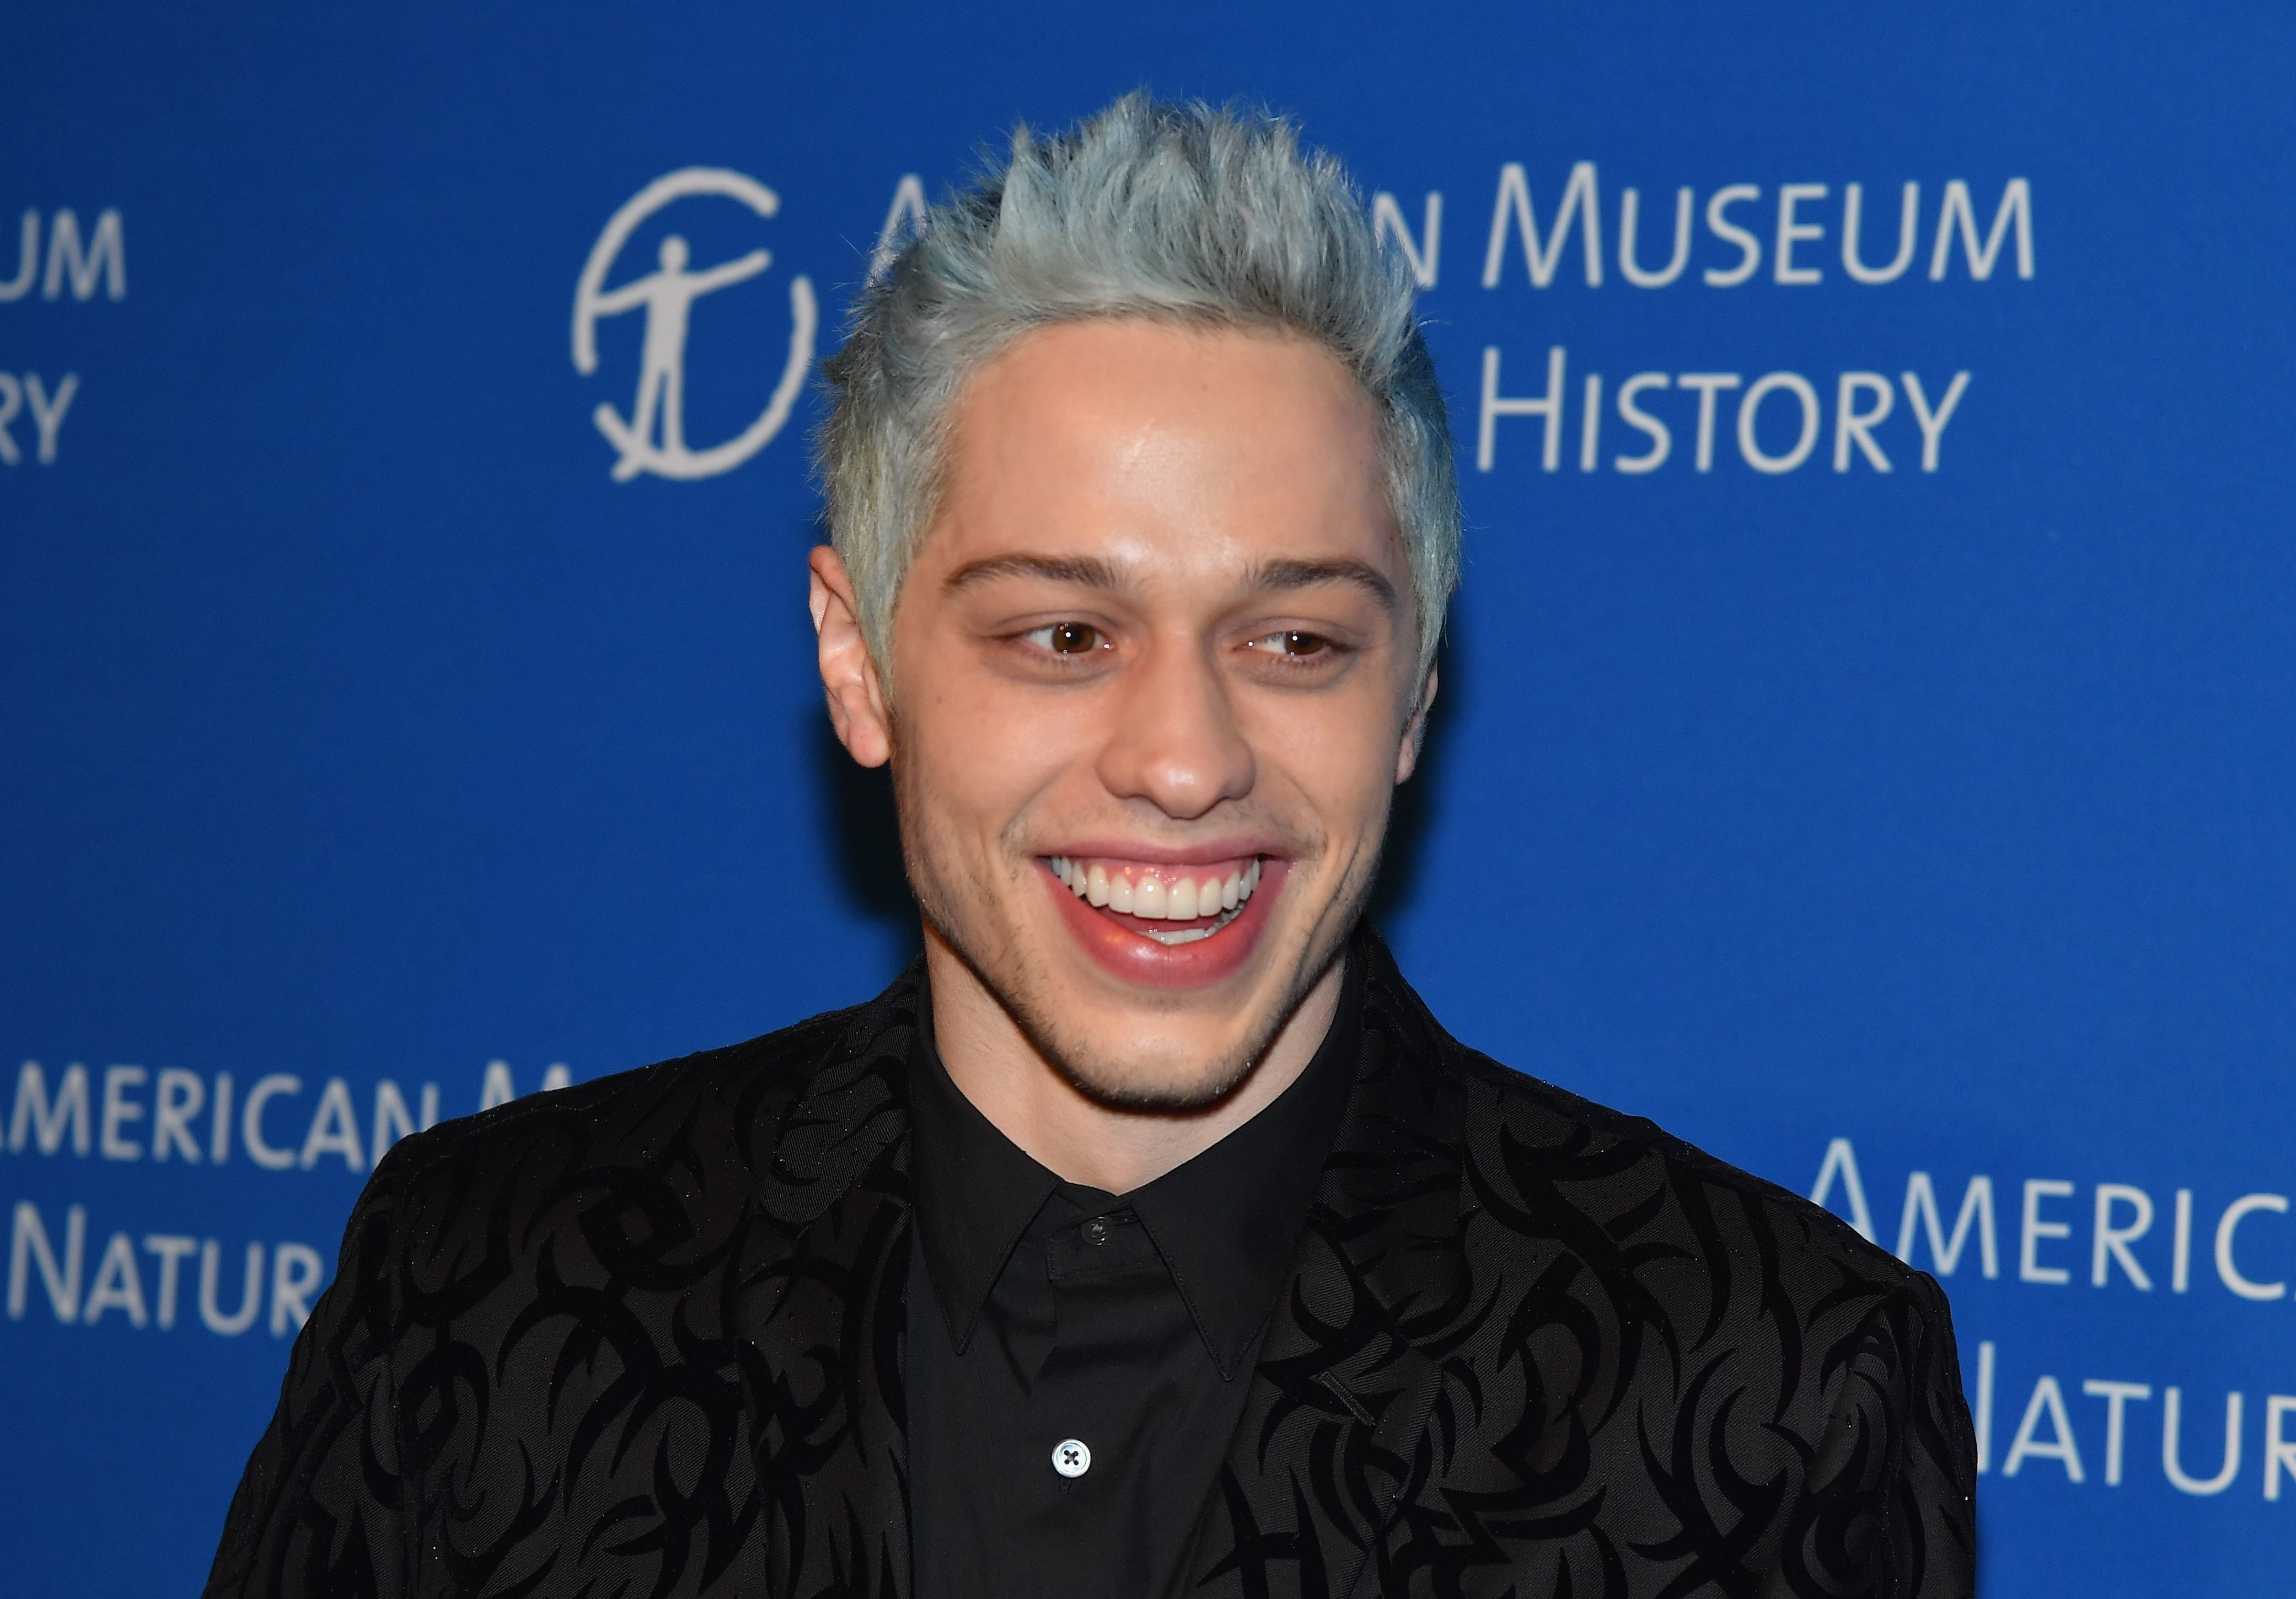 Comedian Pete Davidson attends the American Museum of Natural History's 2018 Museum Gala on November 15, 2018 in New York City. (Photo by Angela Weiss / AFP)        (Photo credit should read ANGELA WEISS/AFP/Getty Images)